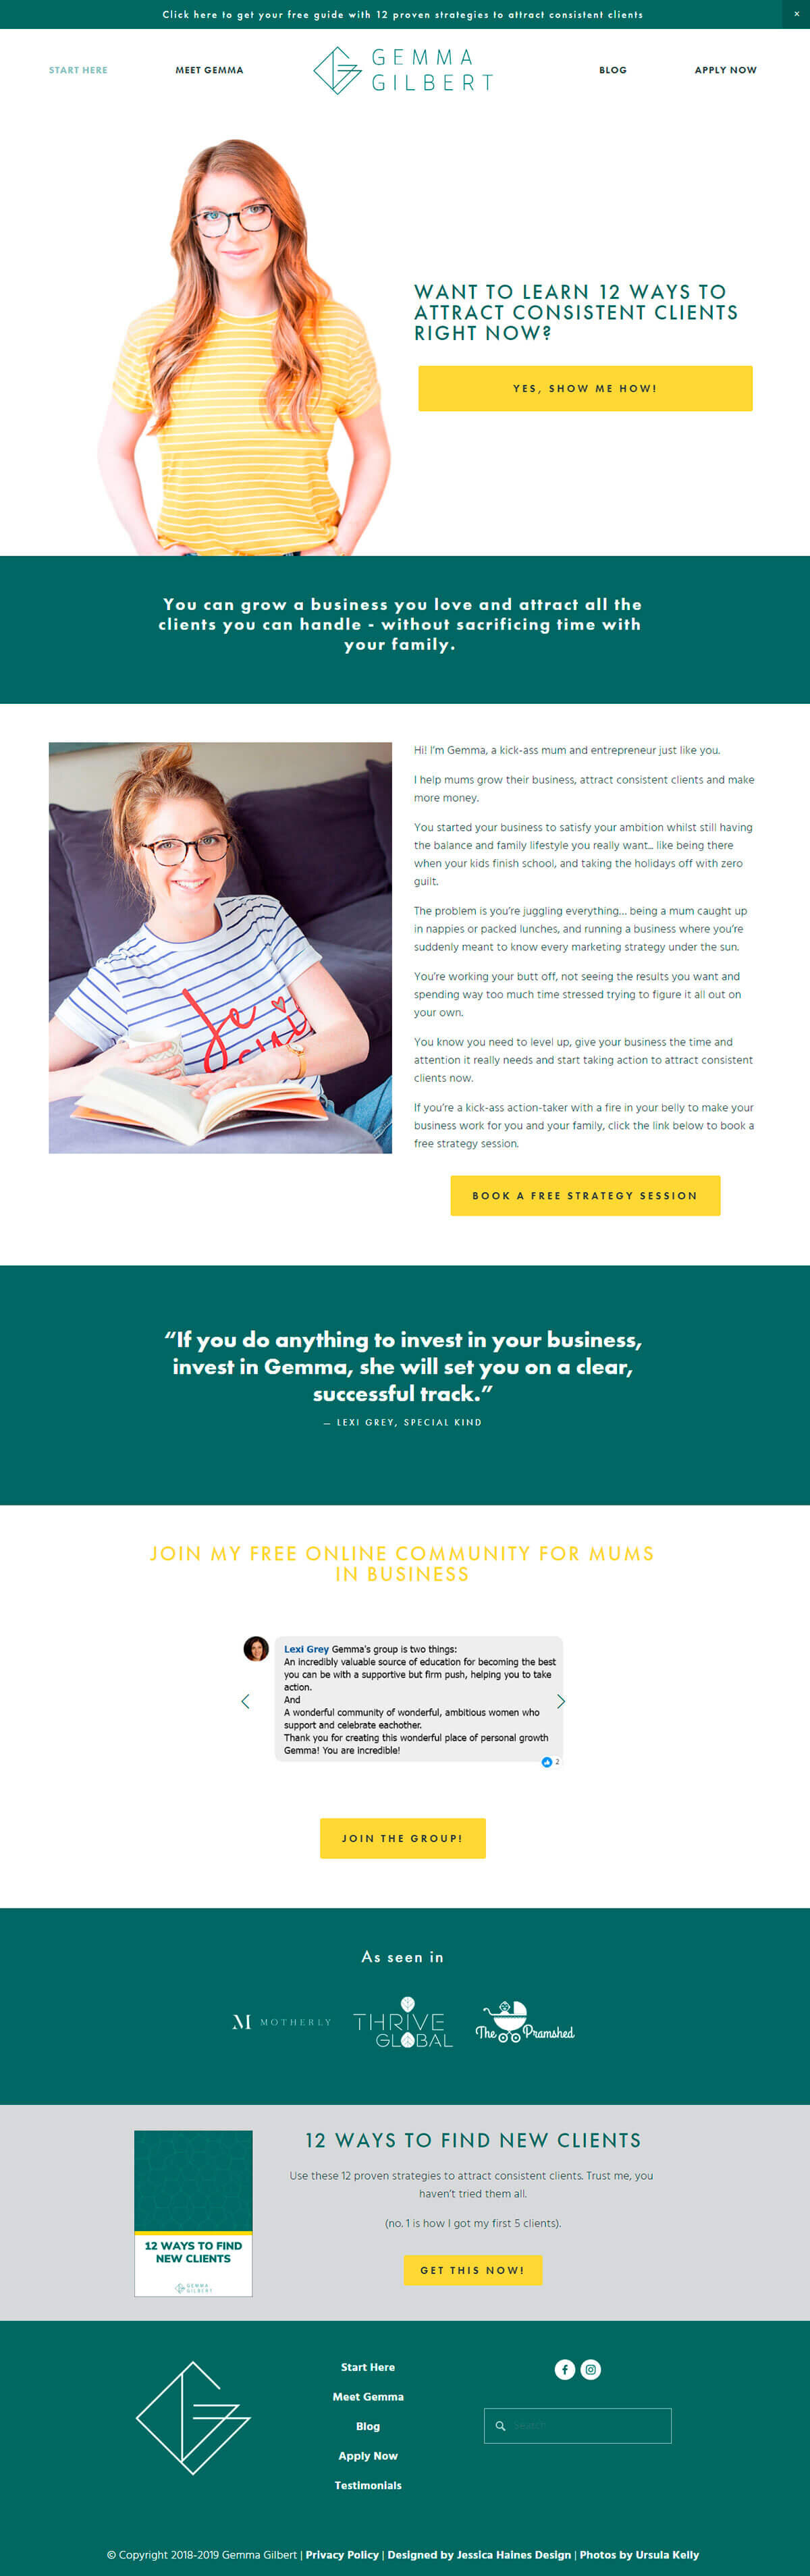 Gemma Gilbert is a business coach for mums. She helps them find consistent clients, set up a strong marketing plan and make more money without sacrificing family time